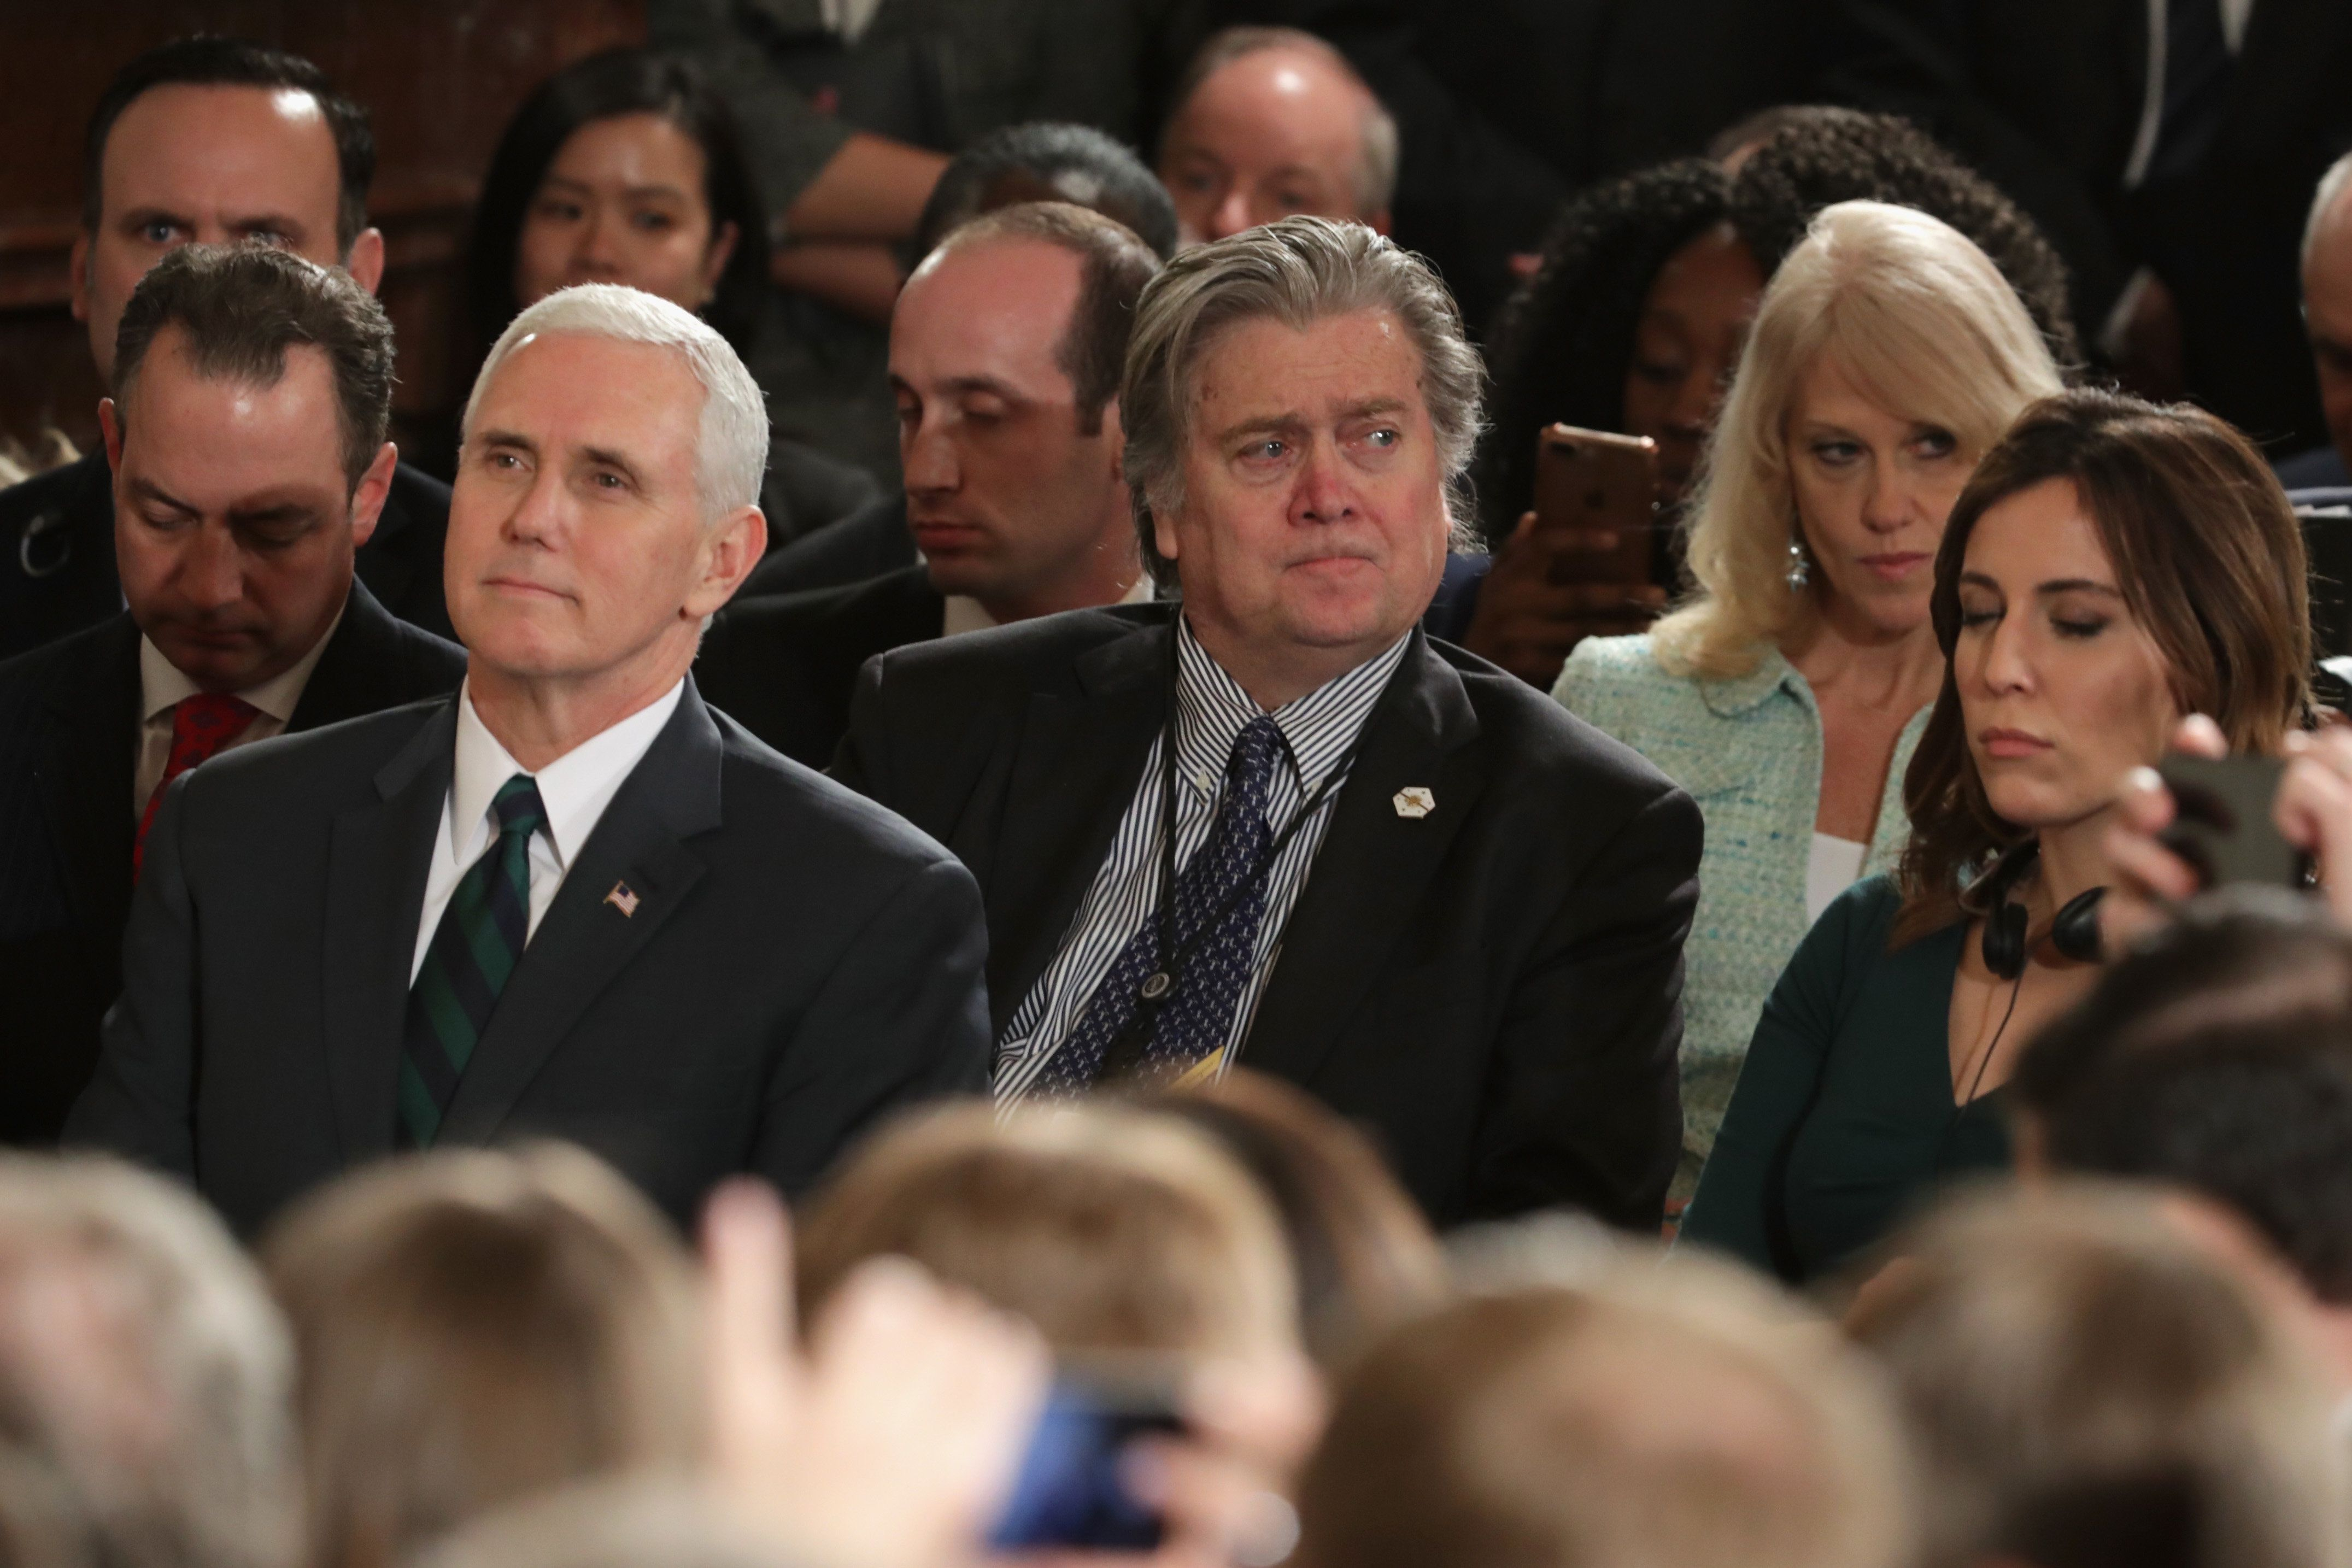 WASHINGTON, DC - MARCH 17: U.S. Vice President Mike Pence (L) and Chief Strategist Steve Bannon (C-R) look on as U.S. President Donald Trump holds a joint press conference with German Chancellor Angela Merkel in the East Room of the White House on March 17, 2017 in Washington, DC. The two leaders discussed strengthening NATO, fighting the Islamic State group, the ongoing conflict in Ukraine and held a roundtable discussion with German business leaders during their first face-to-face meeting.  (Photo by Chip Somodevilla/Getty Images)